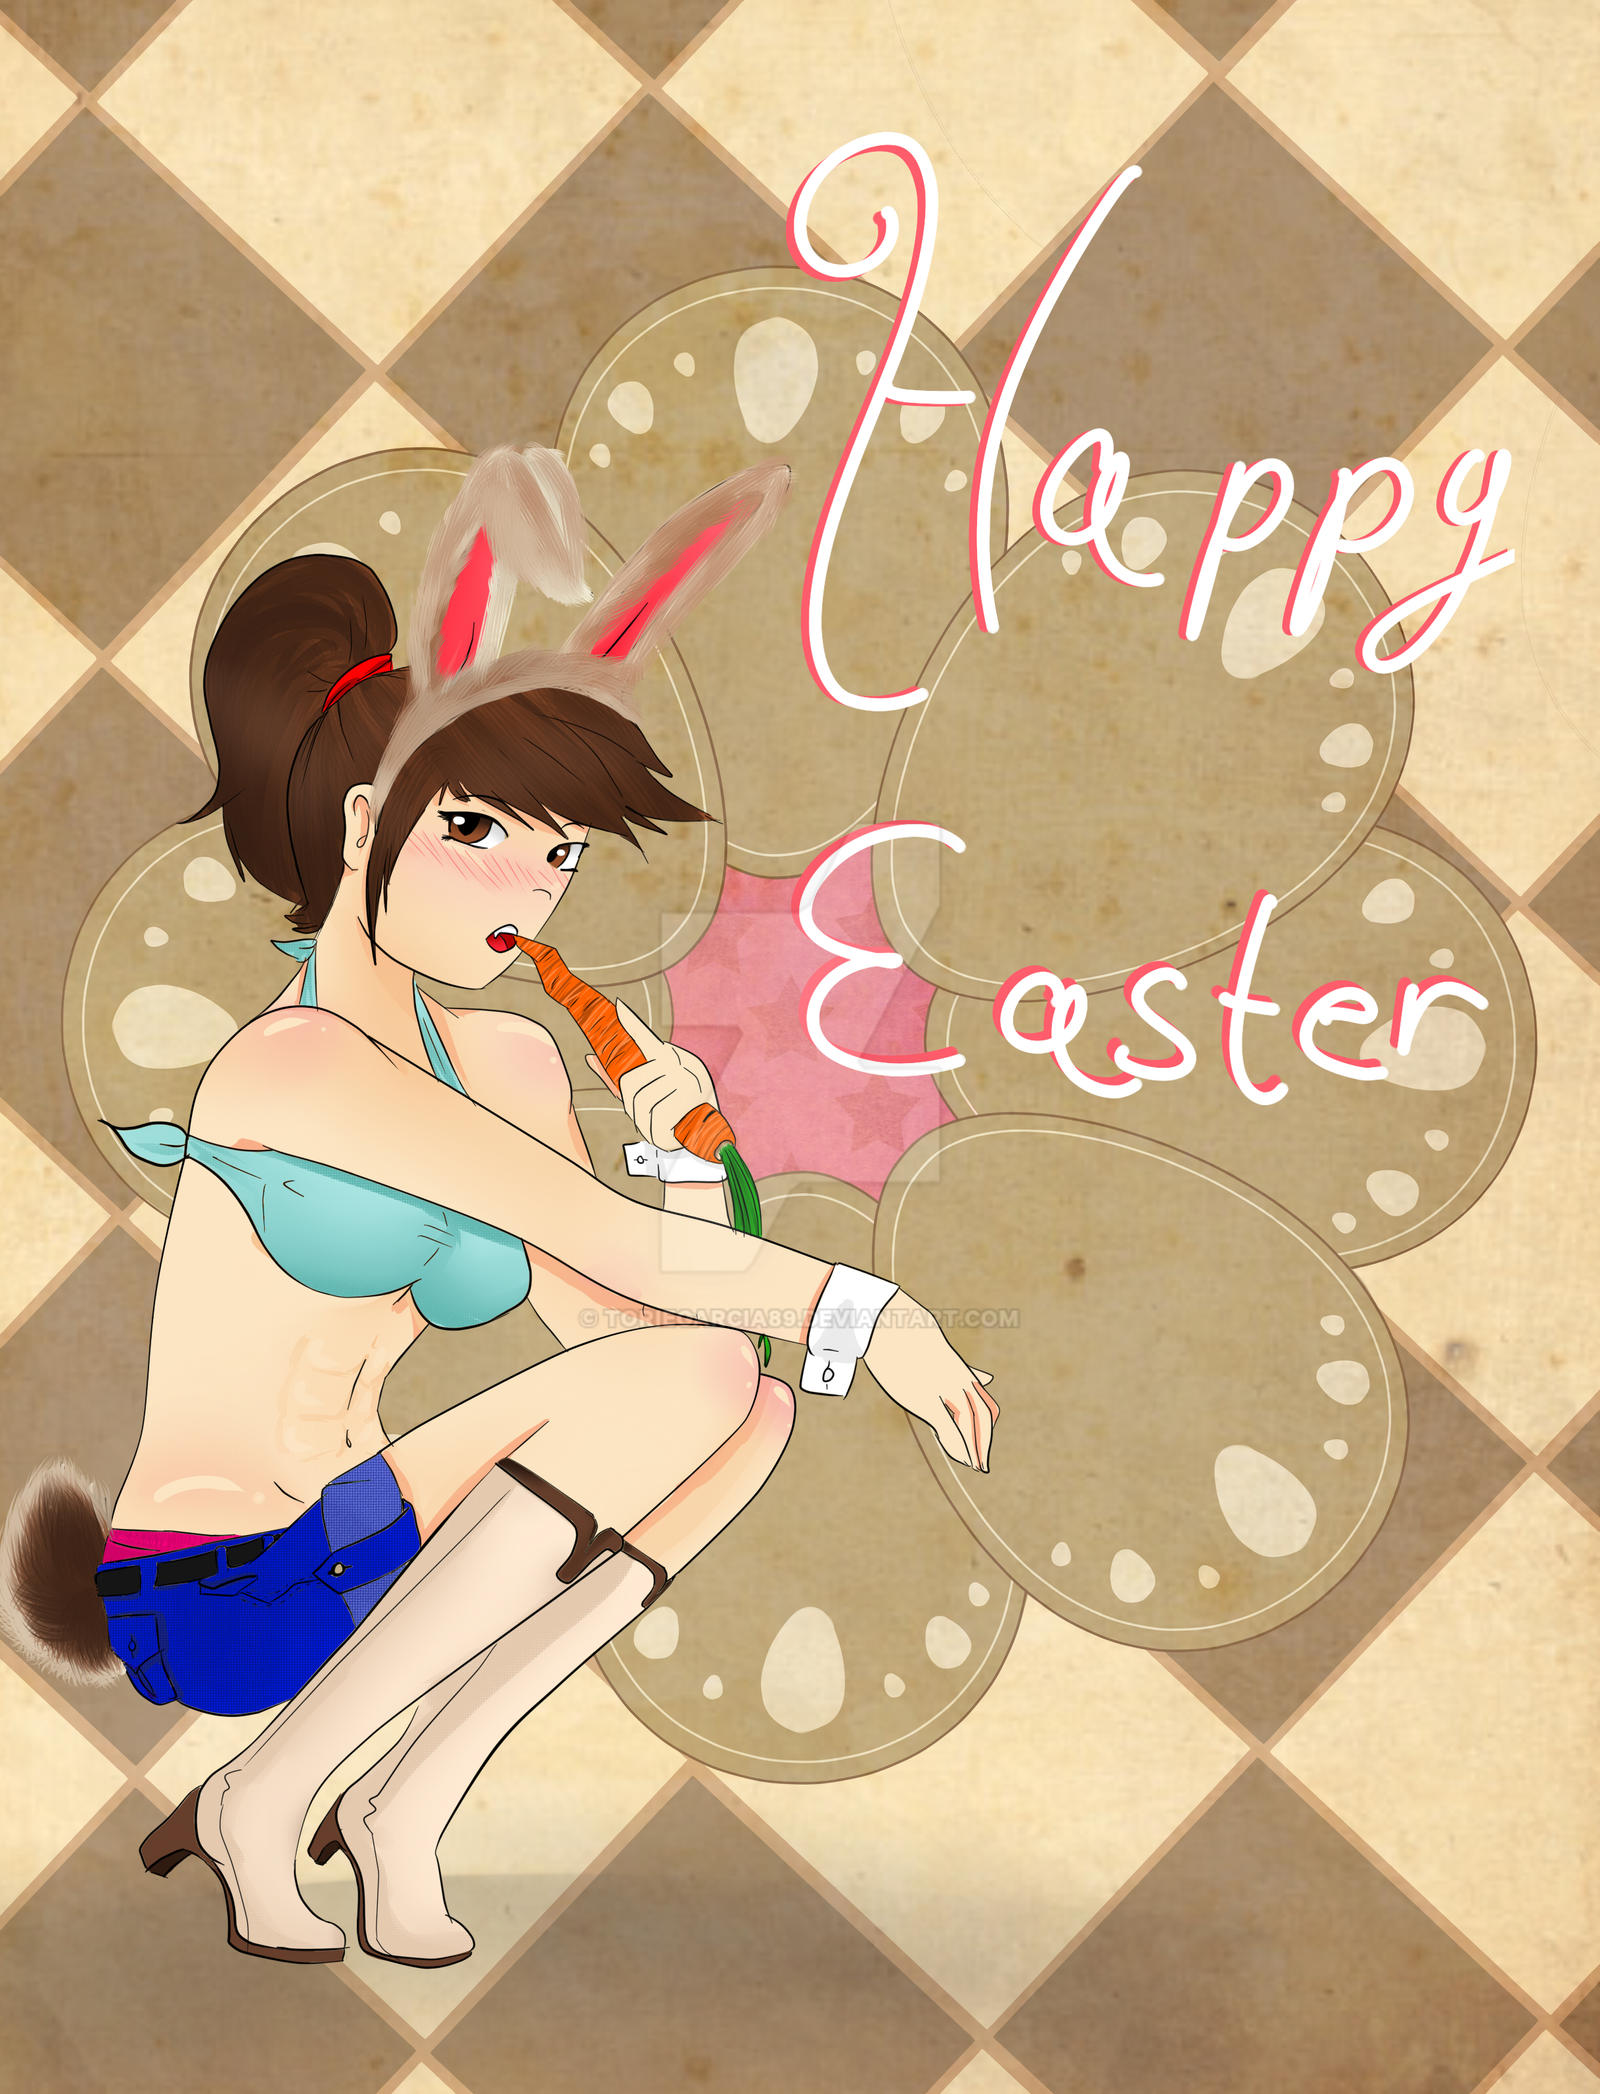 Easter Bunny (My OC) by toriegarcia89